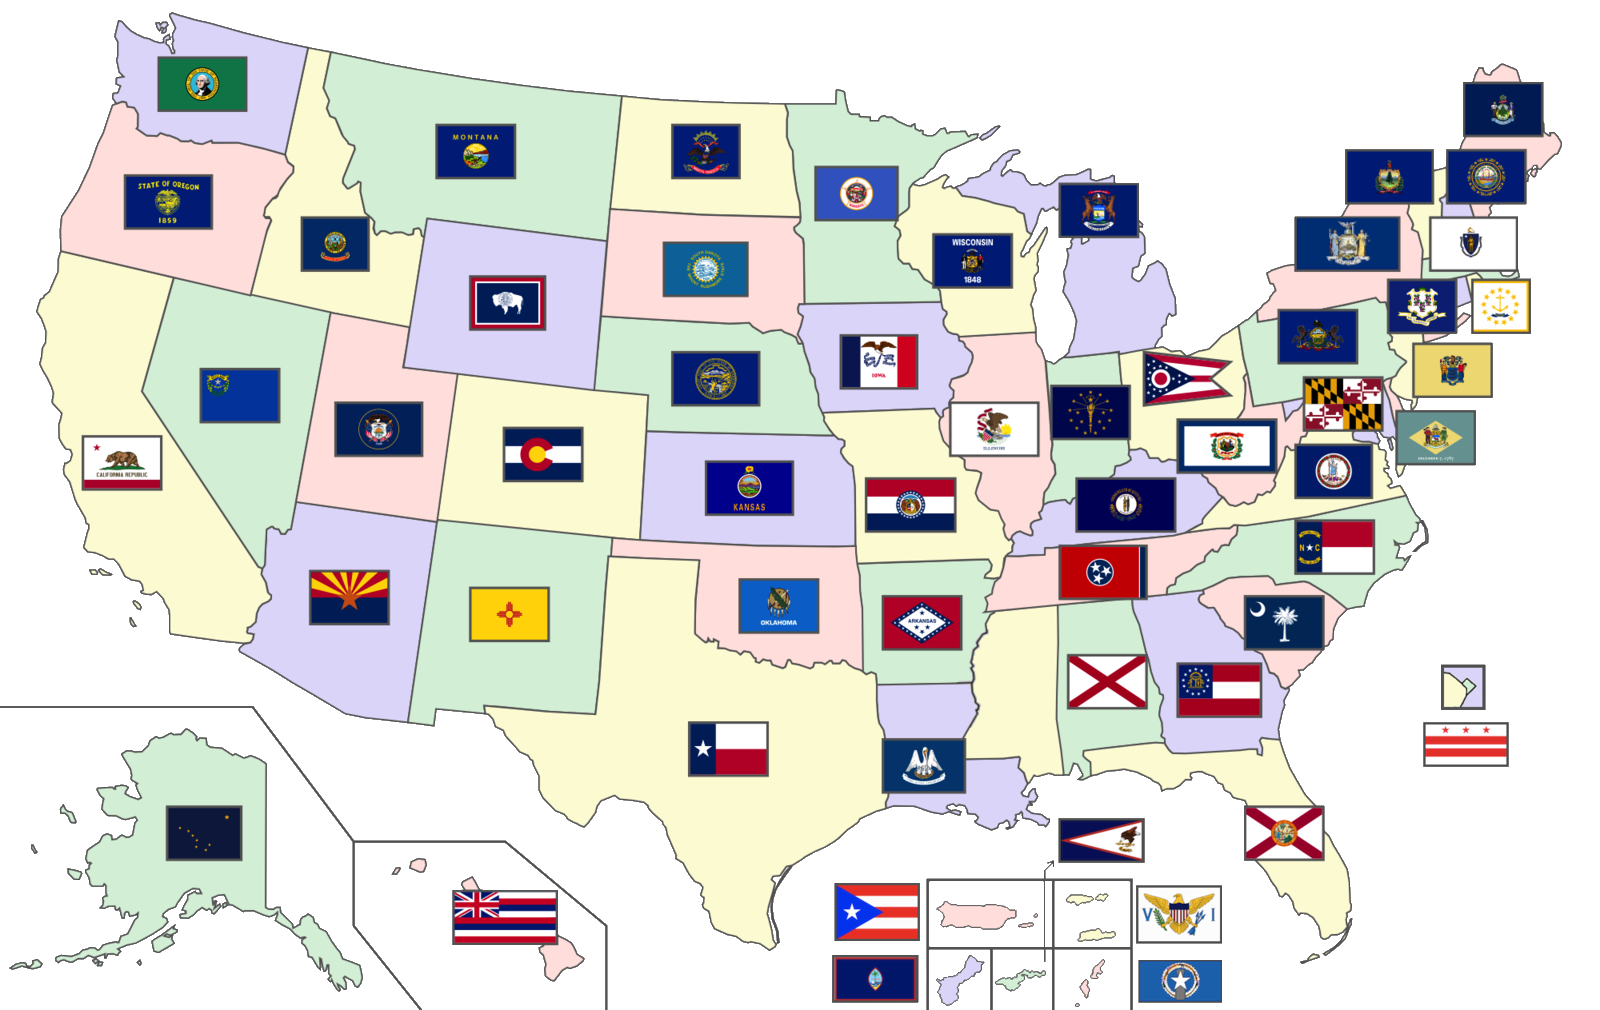 state flags of the united states united states flag united states of america flag original us flag first us flag state flags of usa flags of the us first flag of the united states us peacetime flag united states war flag names flag of the united states union flag america to the flag of the united states of america all united states flags us territories flags new united states flag united states flags for sale printable us flag historical flags of the united states original united states flag all us states flags official us flag old united states flag every us state flag united states flag company united states peace flag different flags of the united states united states union flag show me the united states flag united states civil flag united states military flag oldest us flag united states national flag united states peacetime flag 50 flags of the united states us flag union show me the flag of usa us flag 1777 us state union jack us civil flag of peacetime show me usa flag national flag of united states of america united states of north america flag united states flag during civil war united states flag with red stripe united states flag circle united states army 1775 flag united states flag name flag of the united states army united states flag with one star first us flag 1777 union flag united states united america flag show me the flag of the united states us flag over the years united states flag wikipedia flag of the united states marine corps mexico and united states flag united states of canada flag peacetime flag of the united states us states with flags flag of united states america union usa flag do united states flag flags of all us states united states christian flag first official us flag official flags of the united states united states armed forces flag united states flags over the years united states air force flags us flag 48 states early us flag united states flag 1776 i am the flag of the united states of america united allied states flag flag